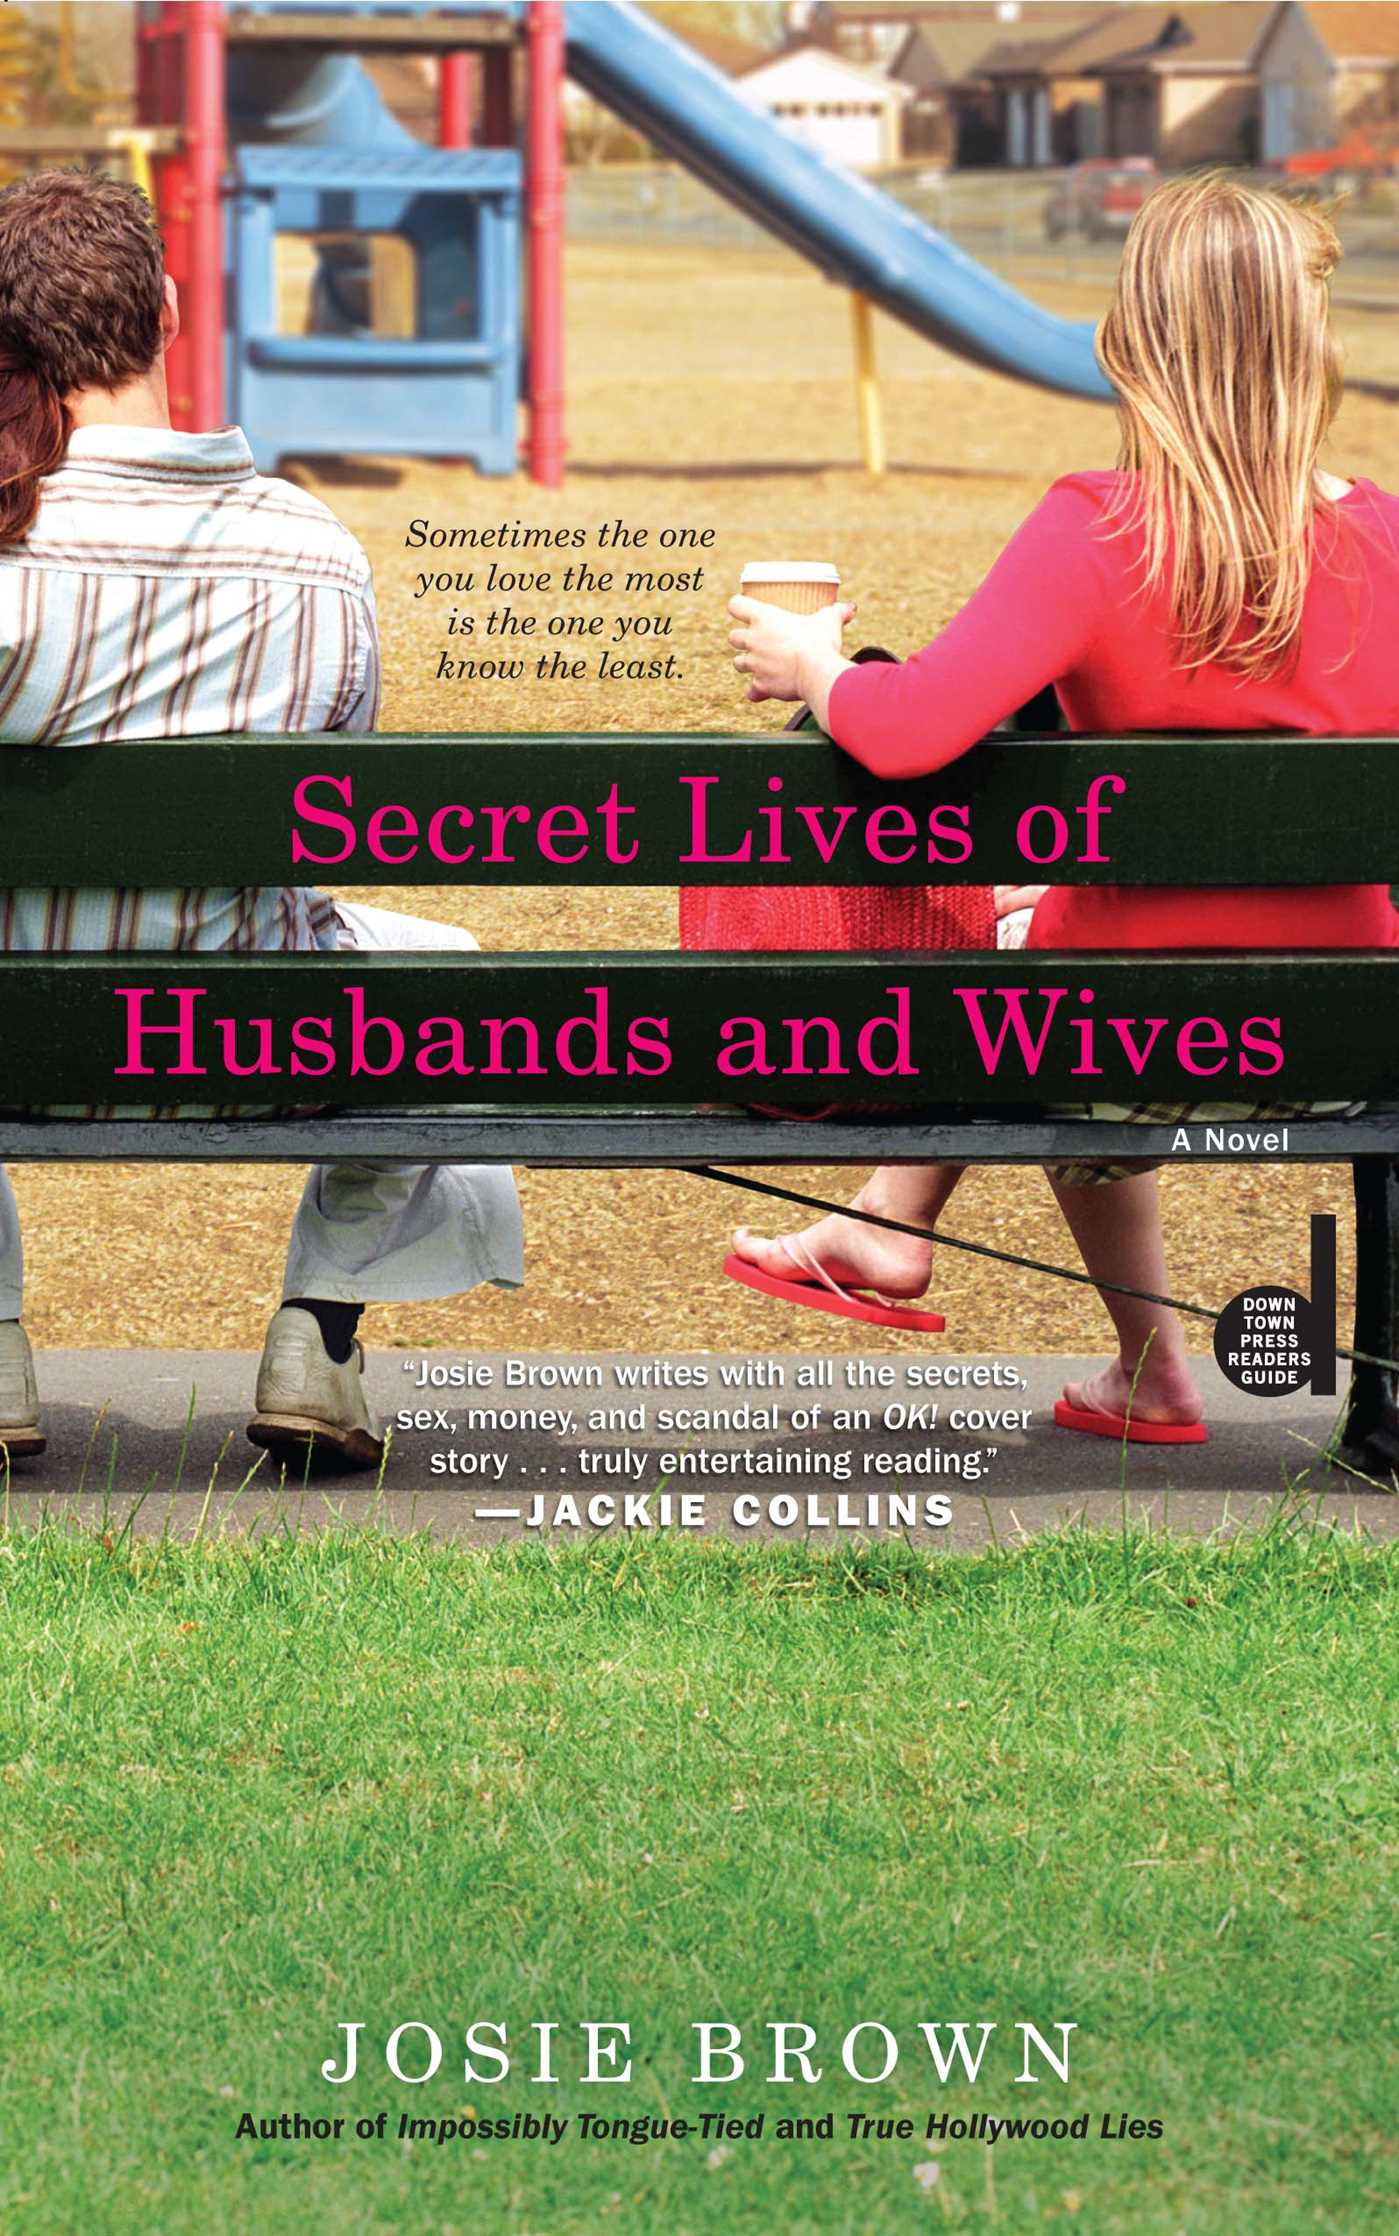 Secret lives of husbands and wives 9781439173176 hr